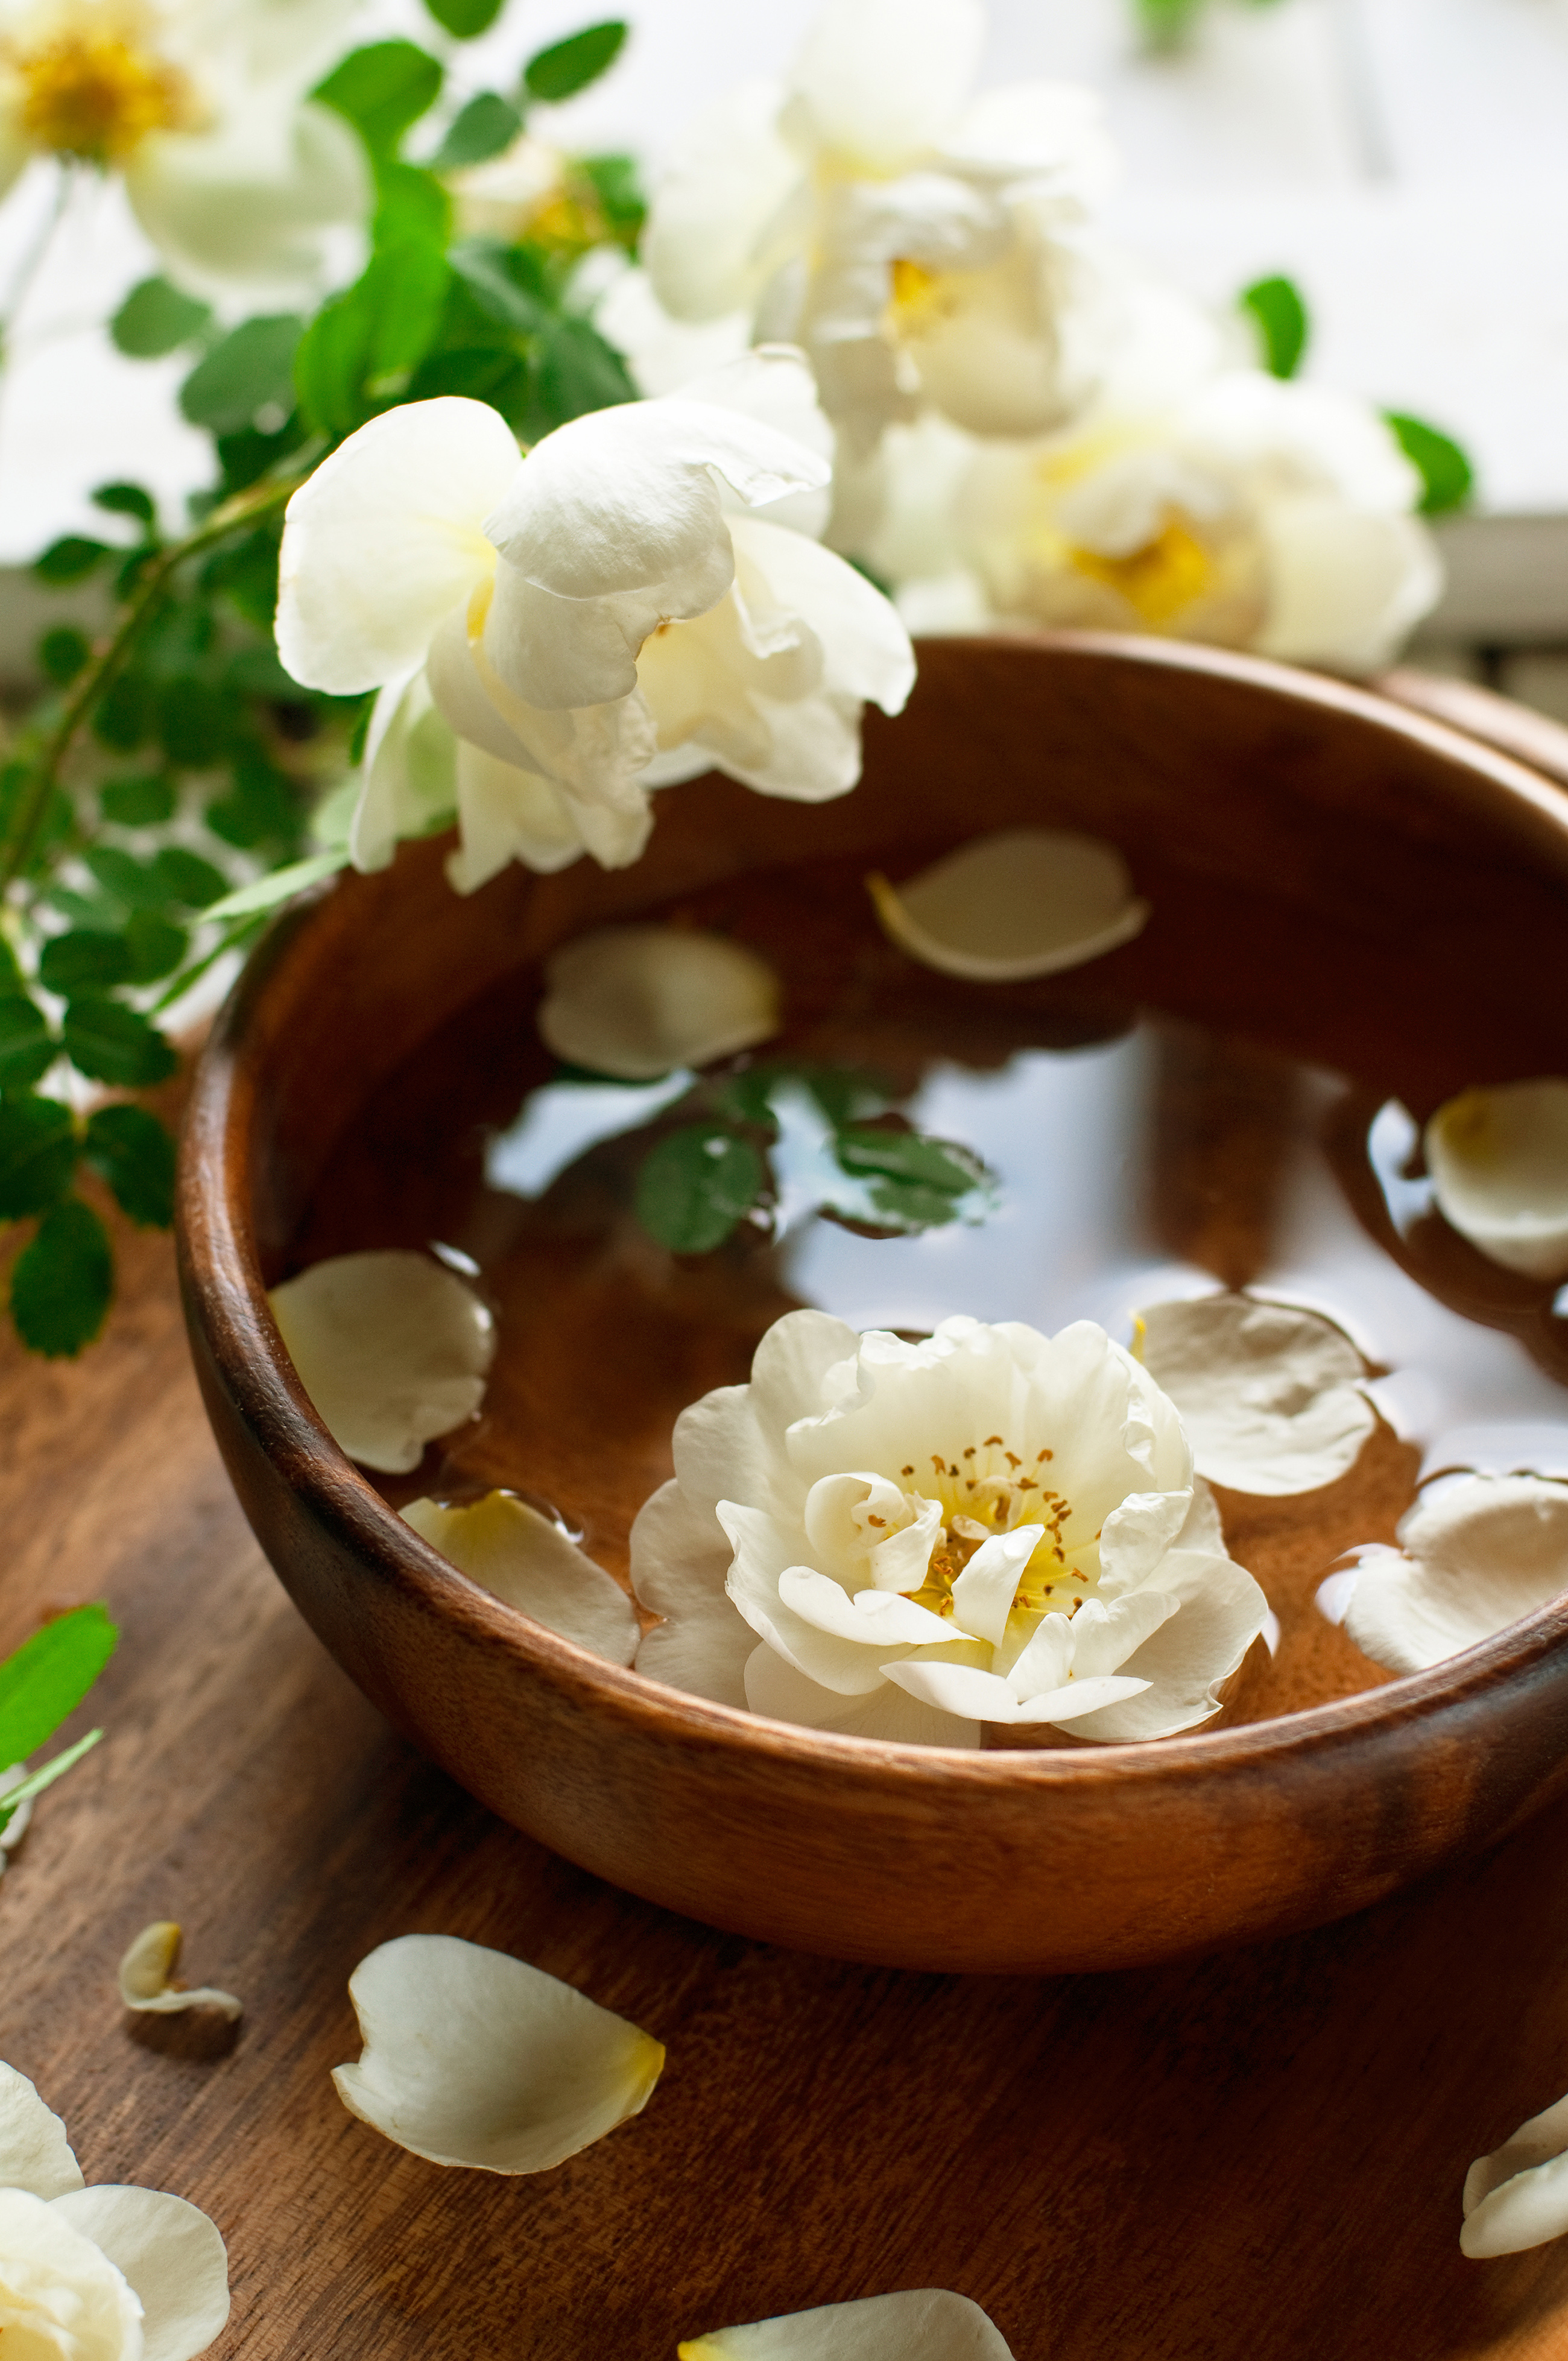 White petals 4972 falling in wooden bowl 55100